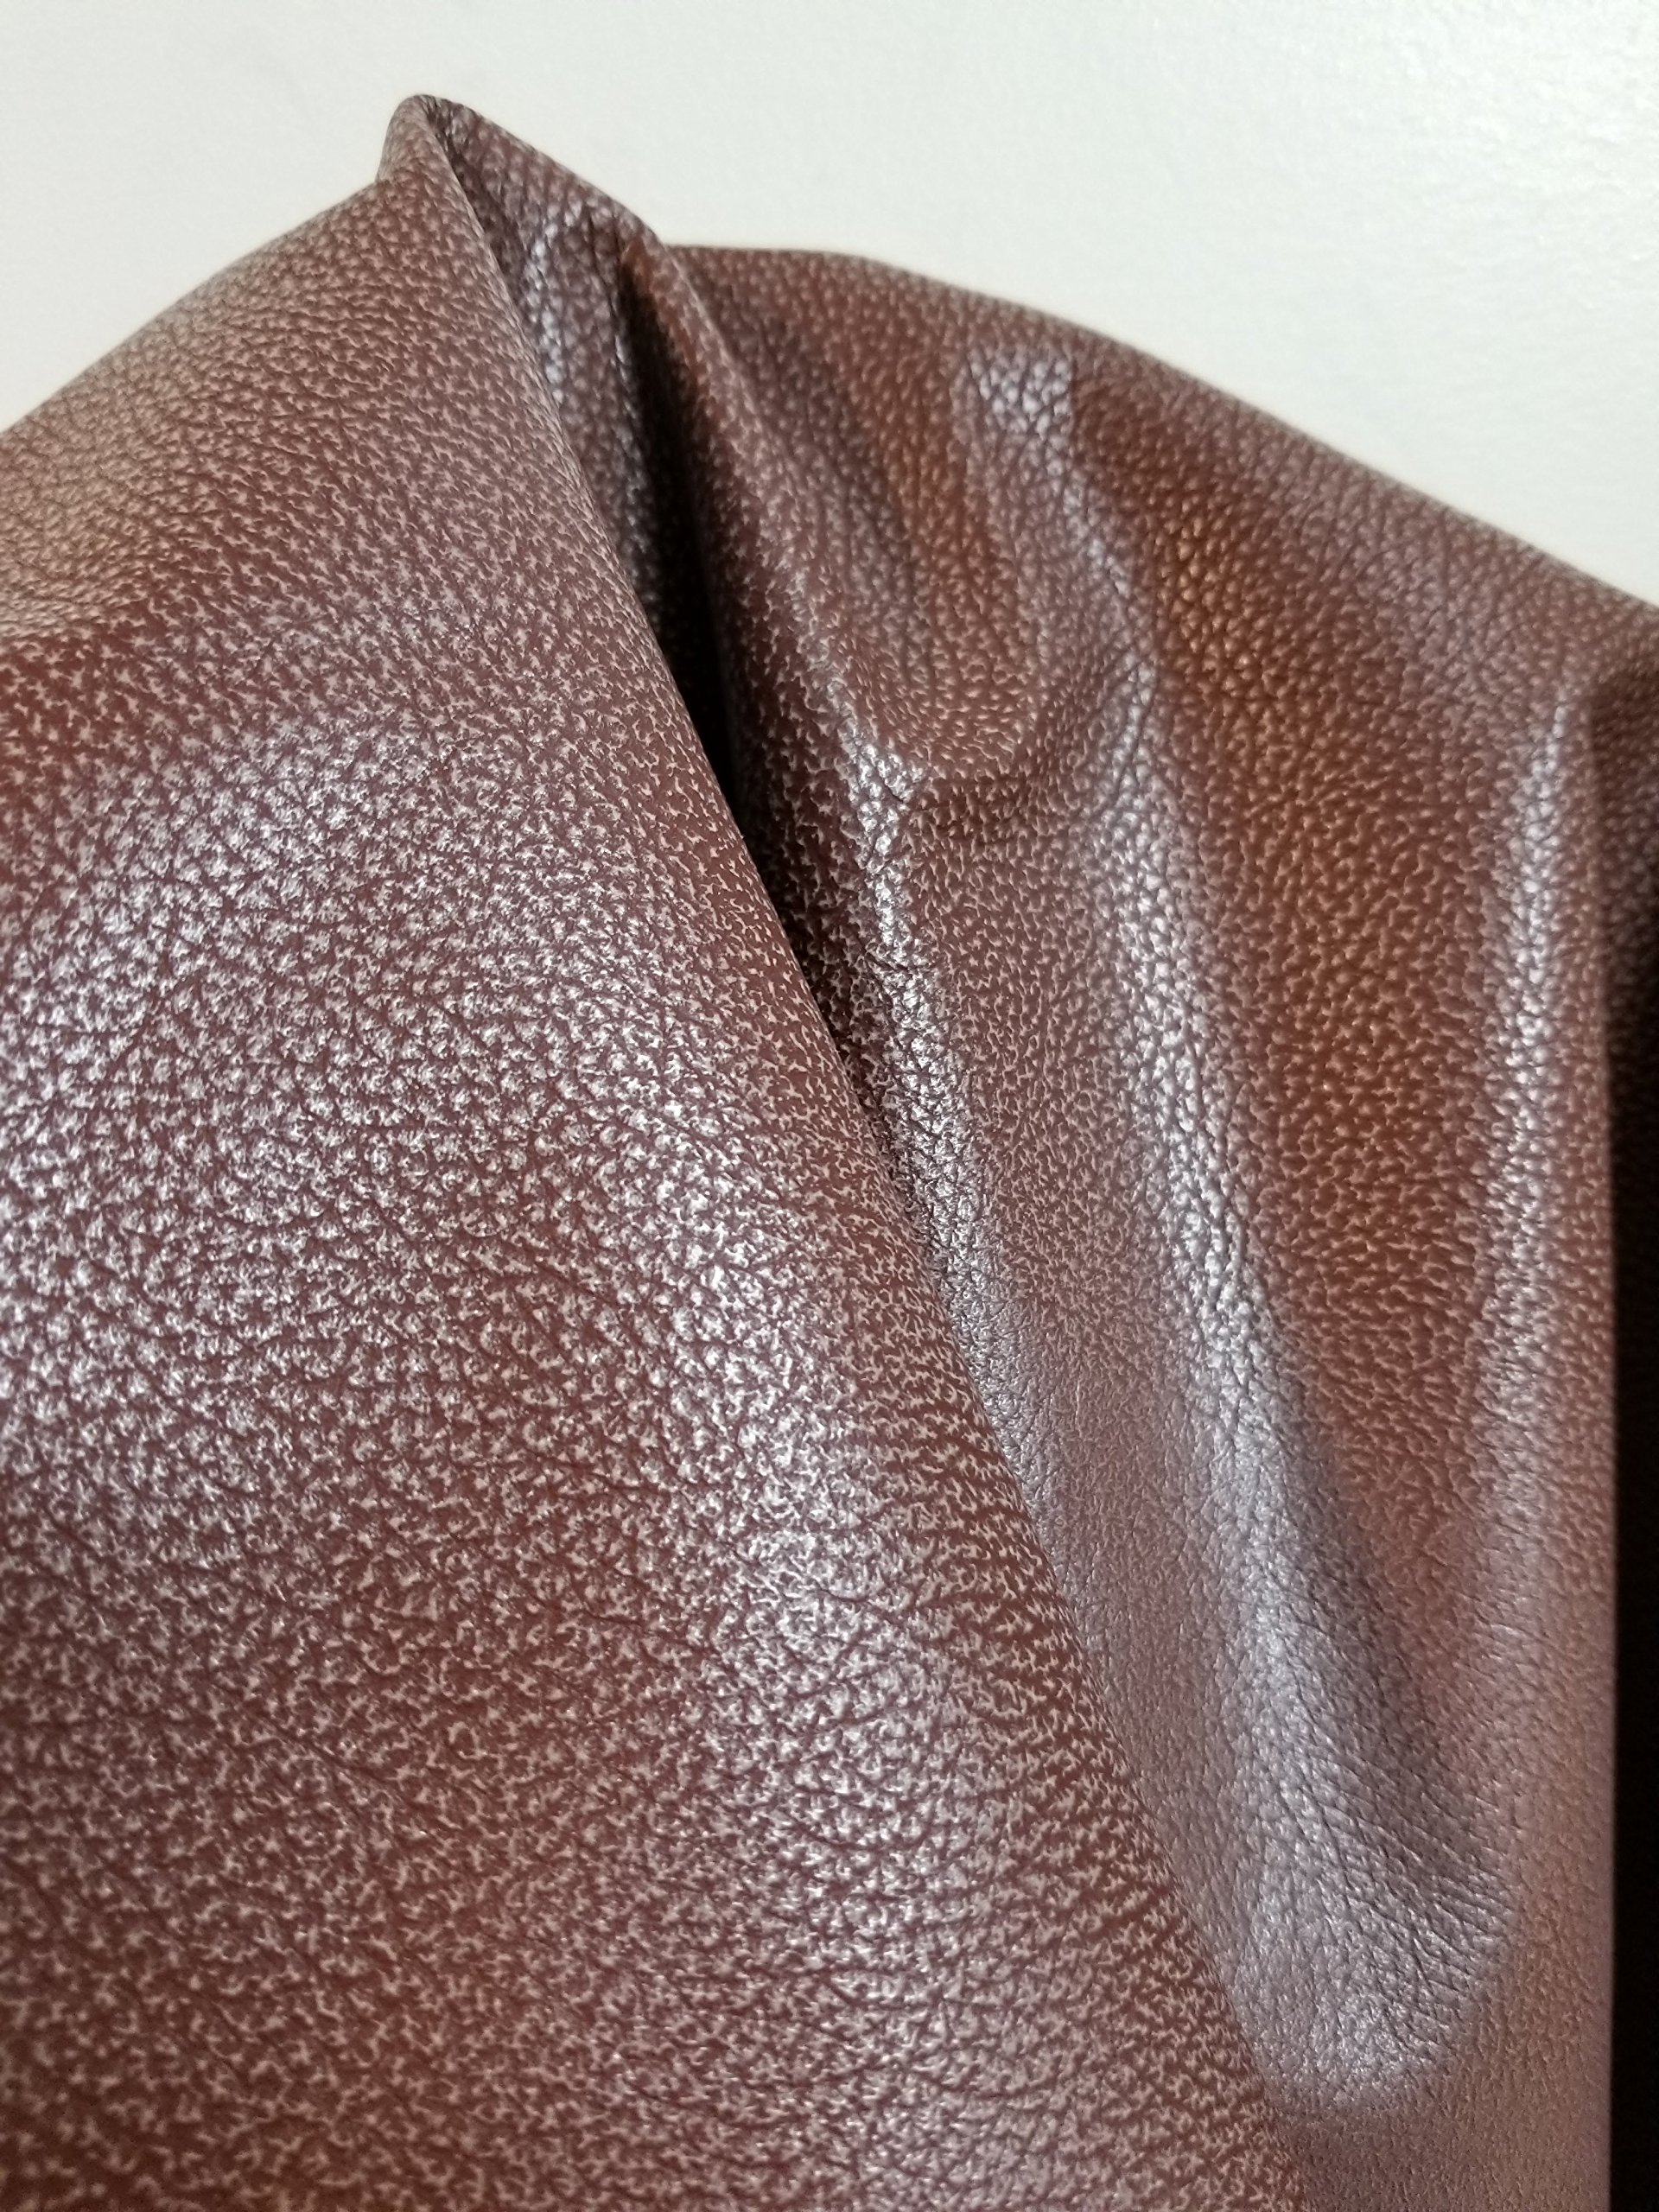 Gold Crackled Italian Metallic 5-7 Square Feet 1.5 oz 0.8-1.0 mm Soft Goat Skin Upholstery Garment Handbag Crafting Genuine Leather Skin Hide Tooling Crafting About 24 x30 5-7 sq.ft.